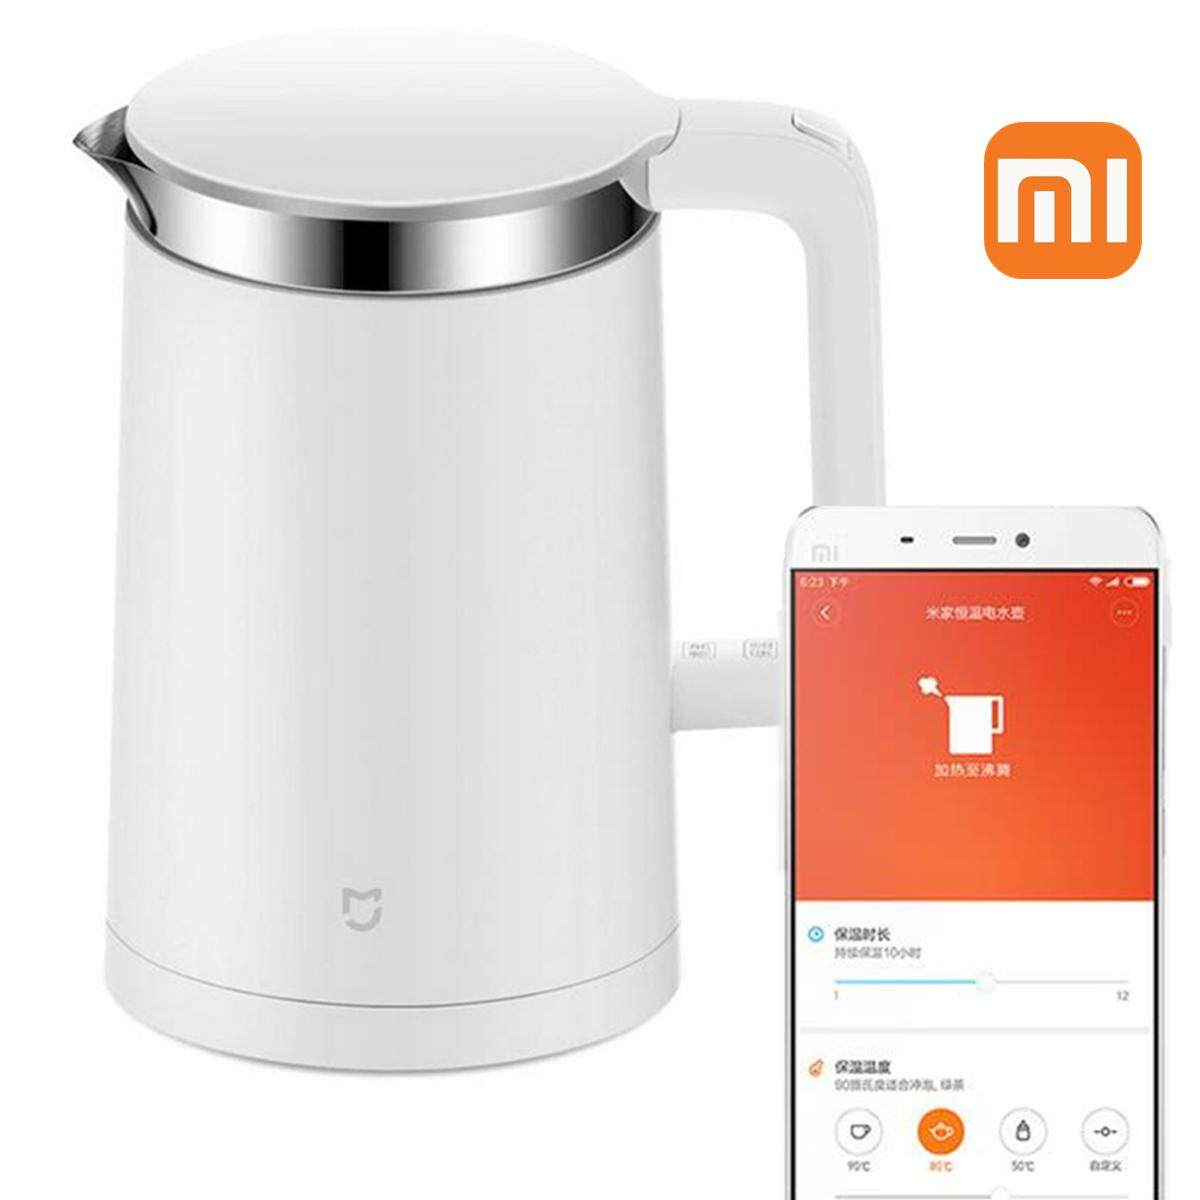 Stainless Steel Smart App Electric Household Kettle 12h Constant Temperature By Freebang.